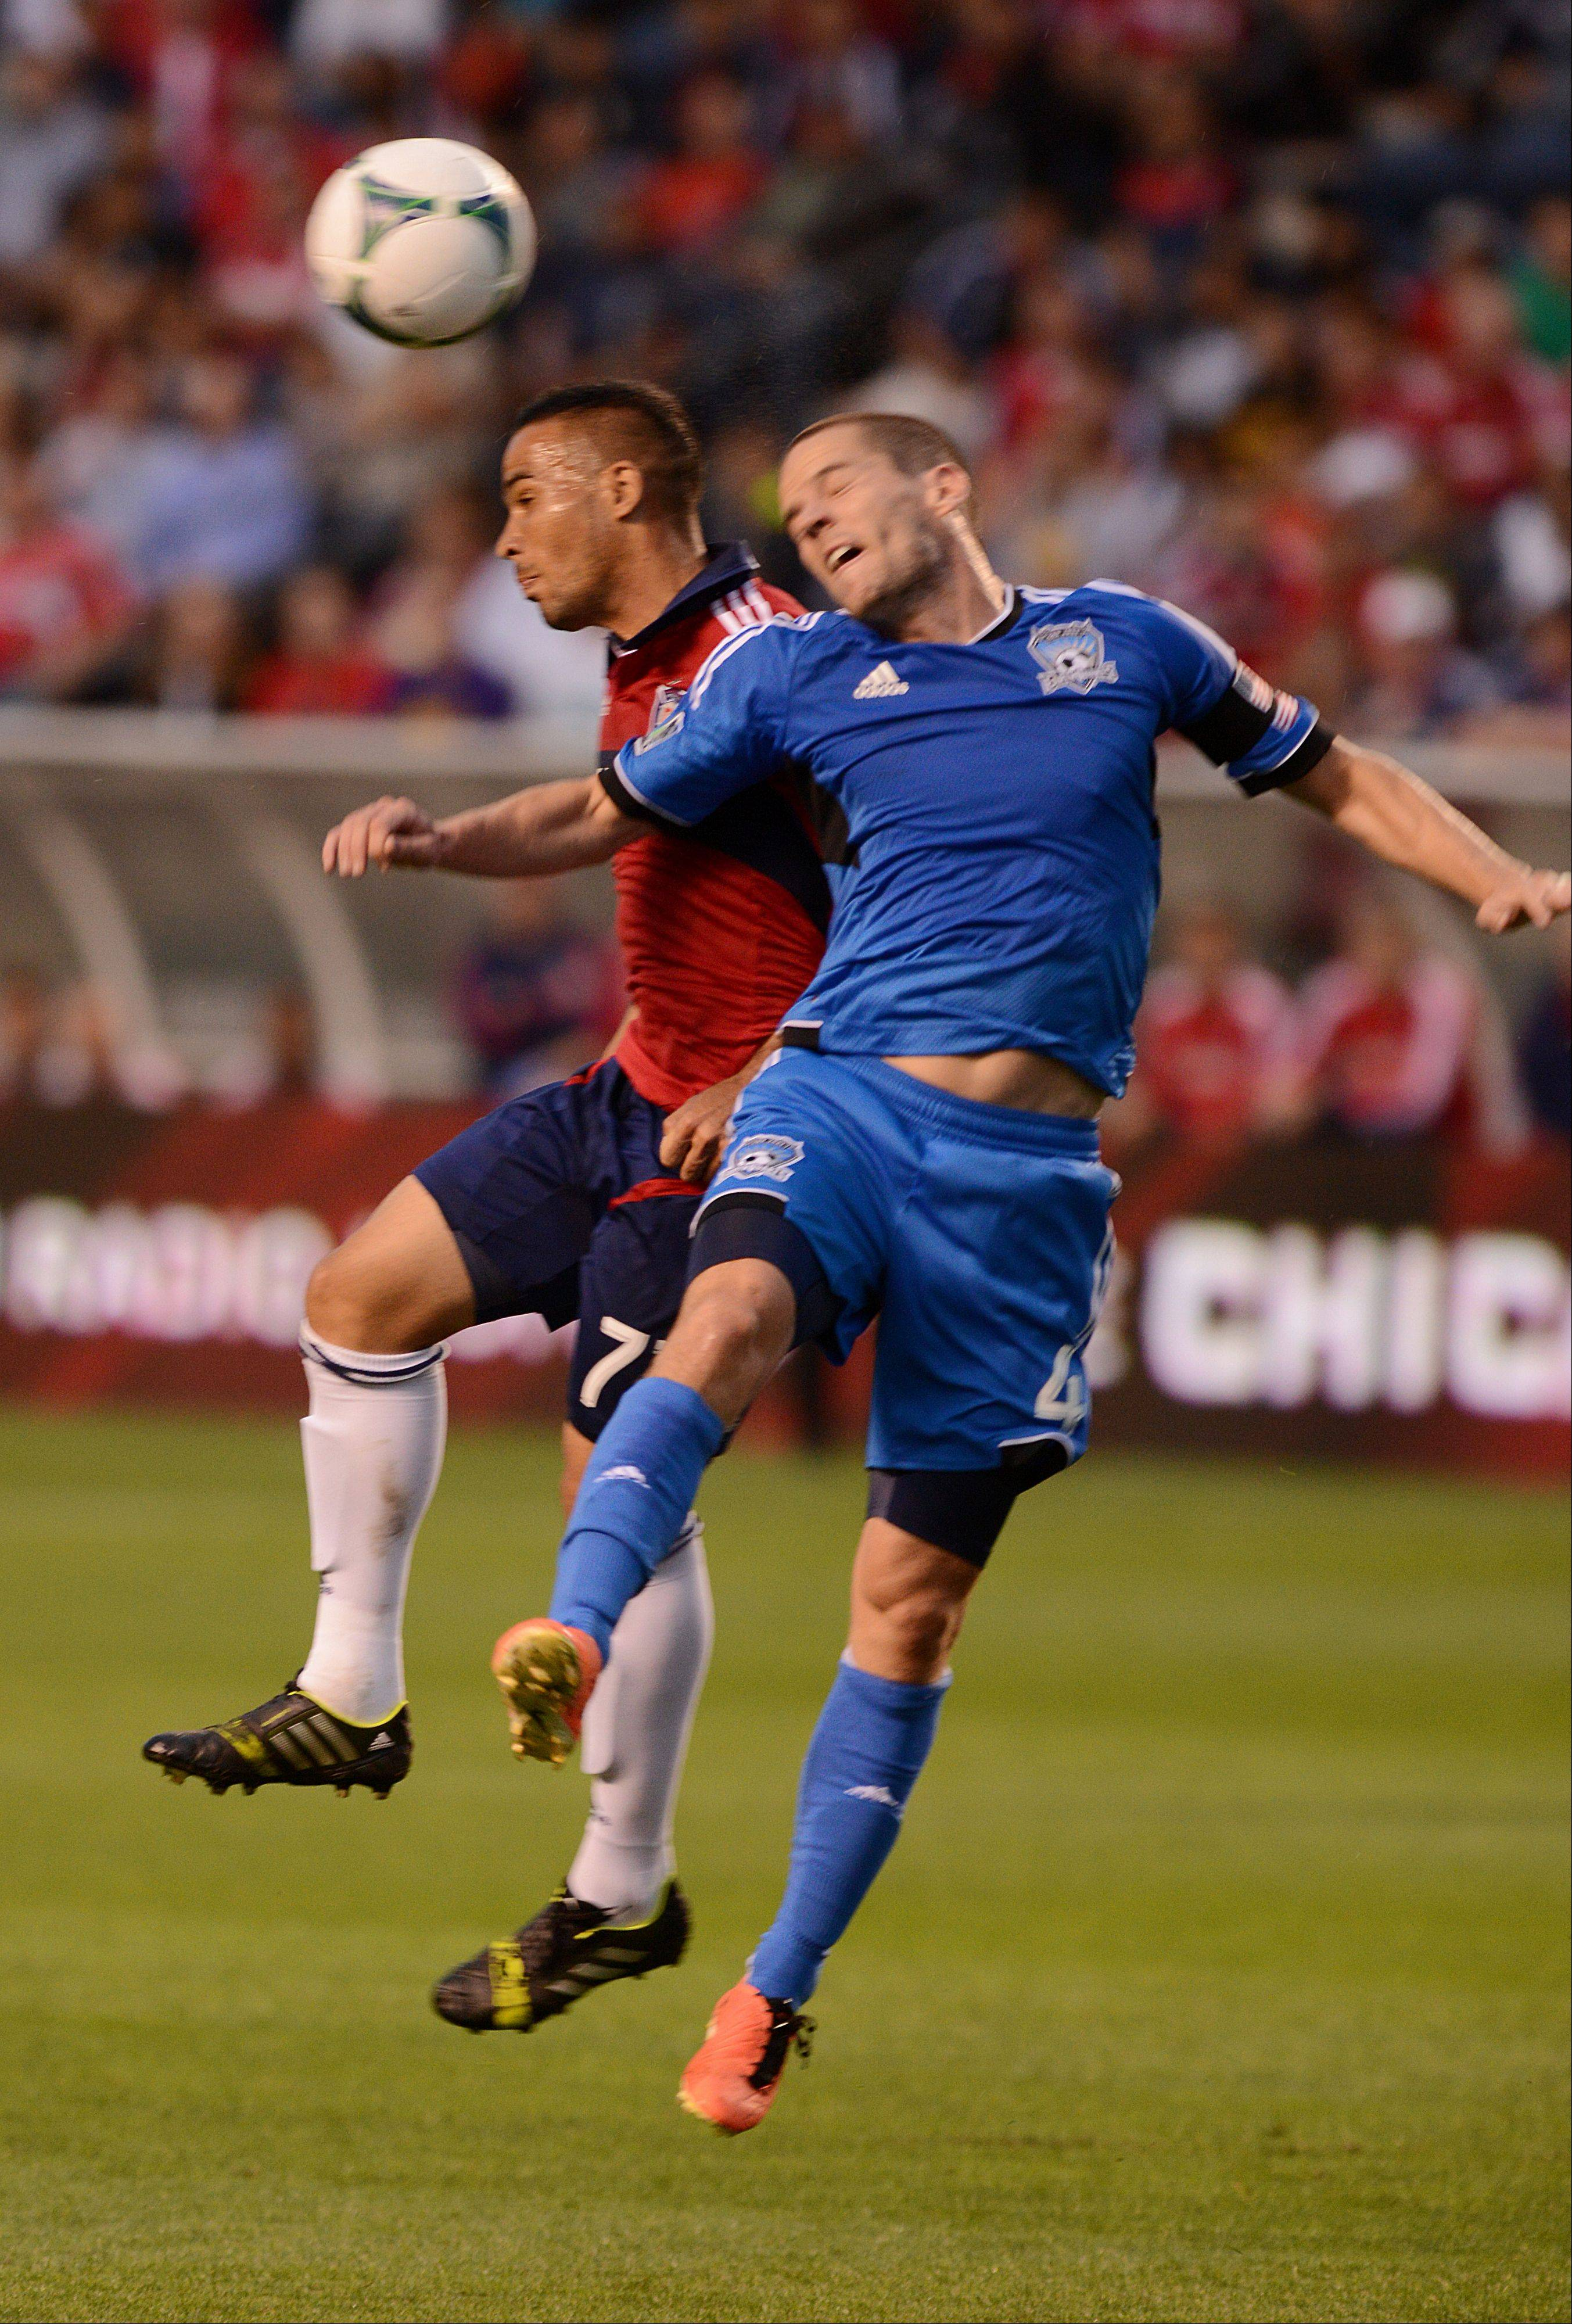 Alex of the Chicago Fire and Sam Cronin of San Jose Earthquakes battle for control of the ball Wednesday night during a game in Bridgeview.